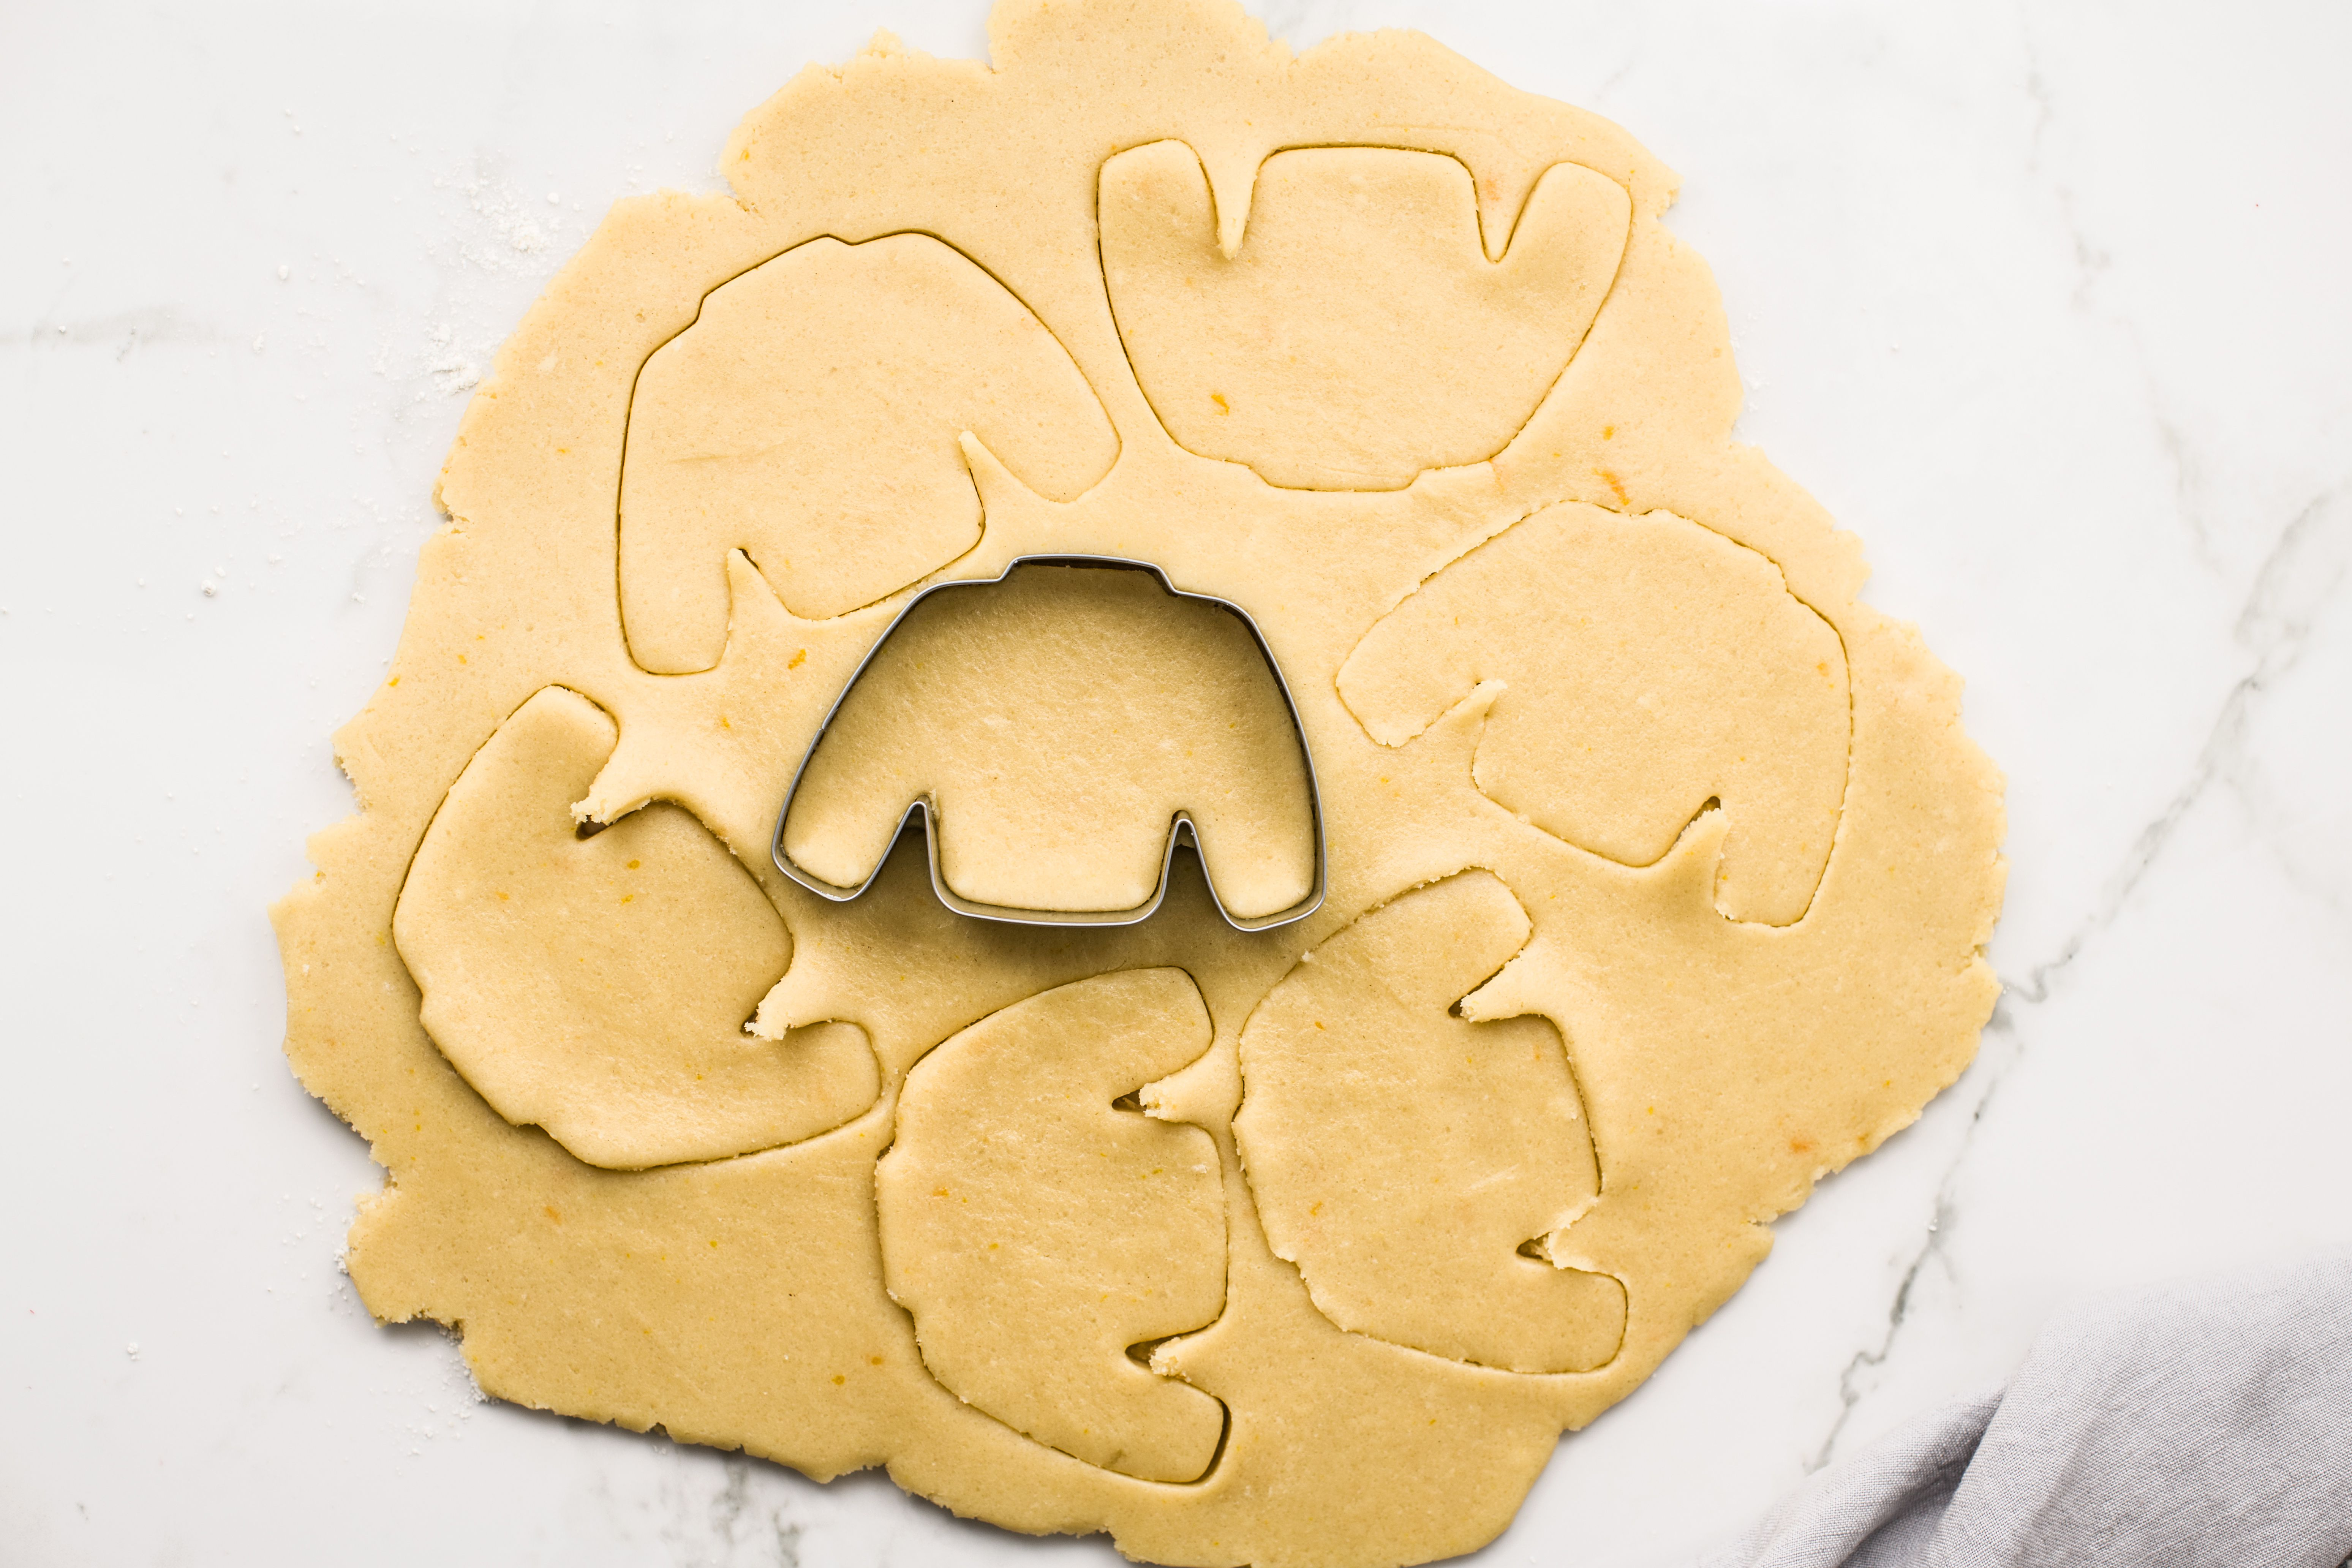 Cutting out dough into sweater shapes